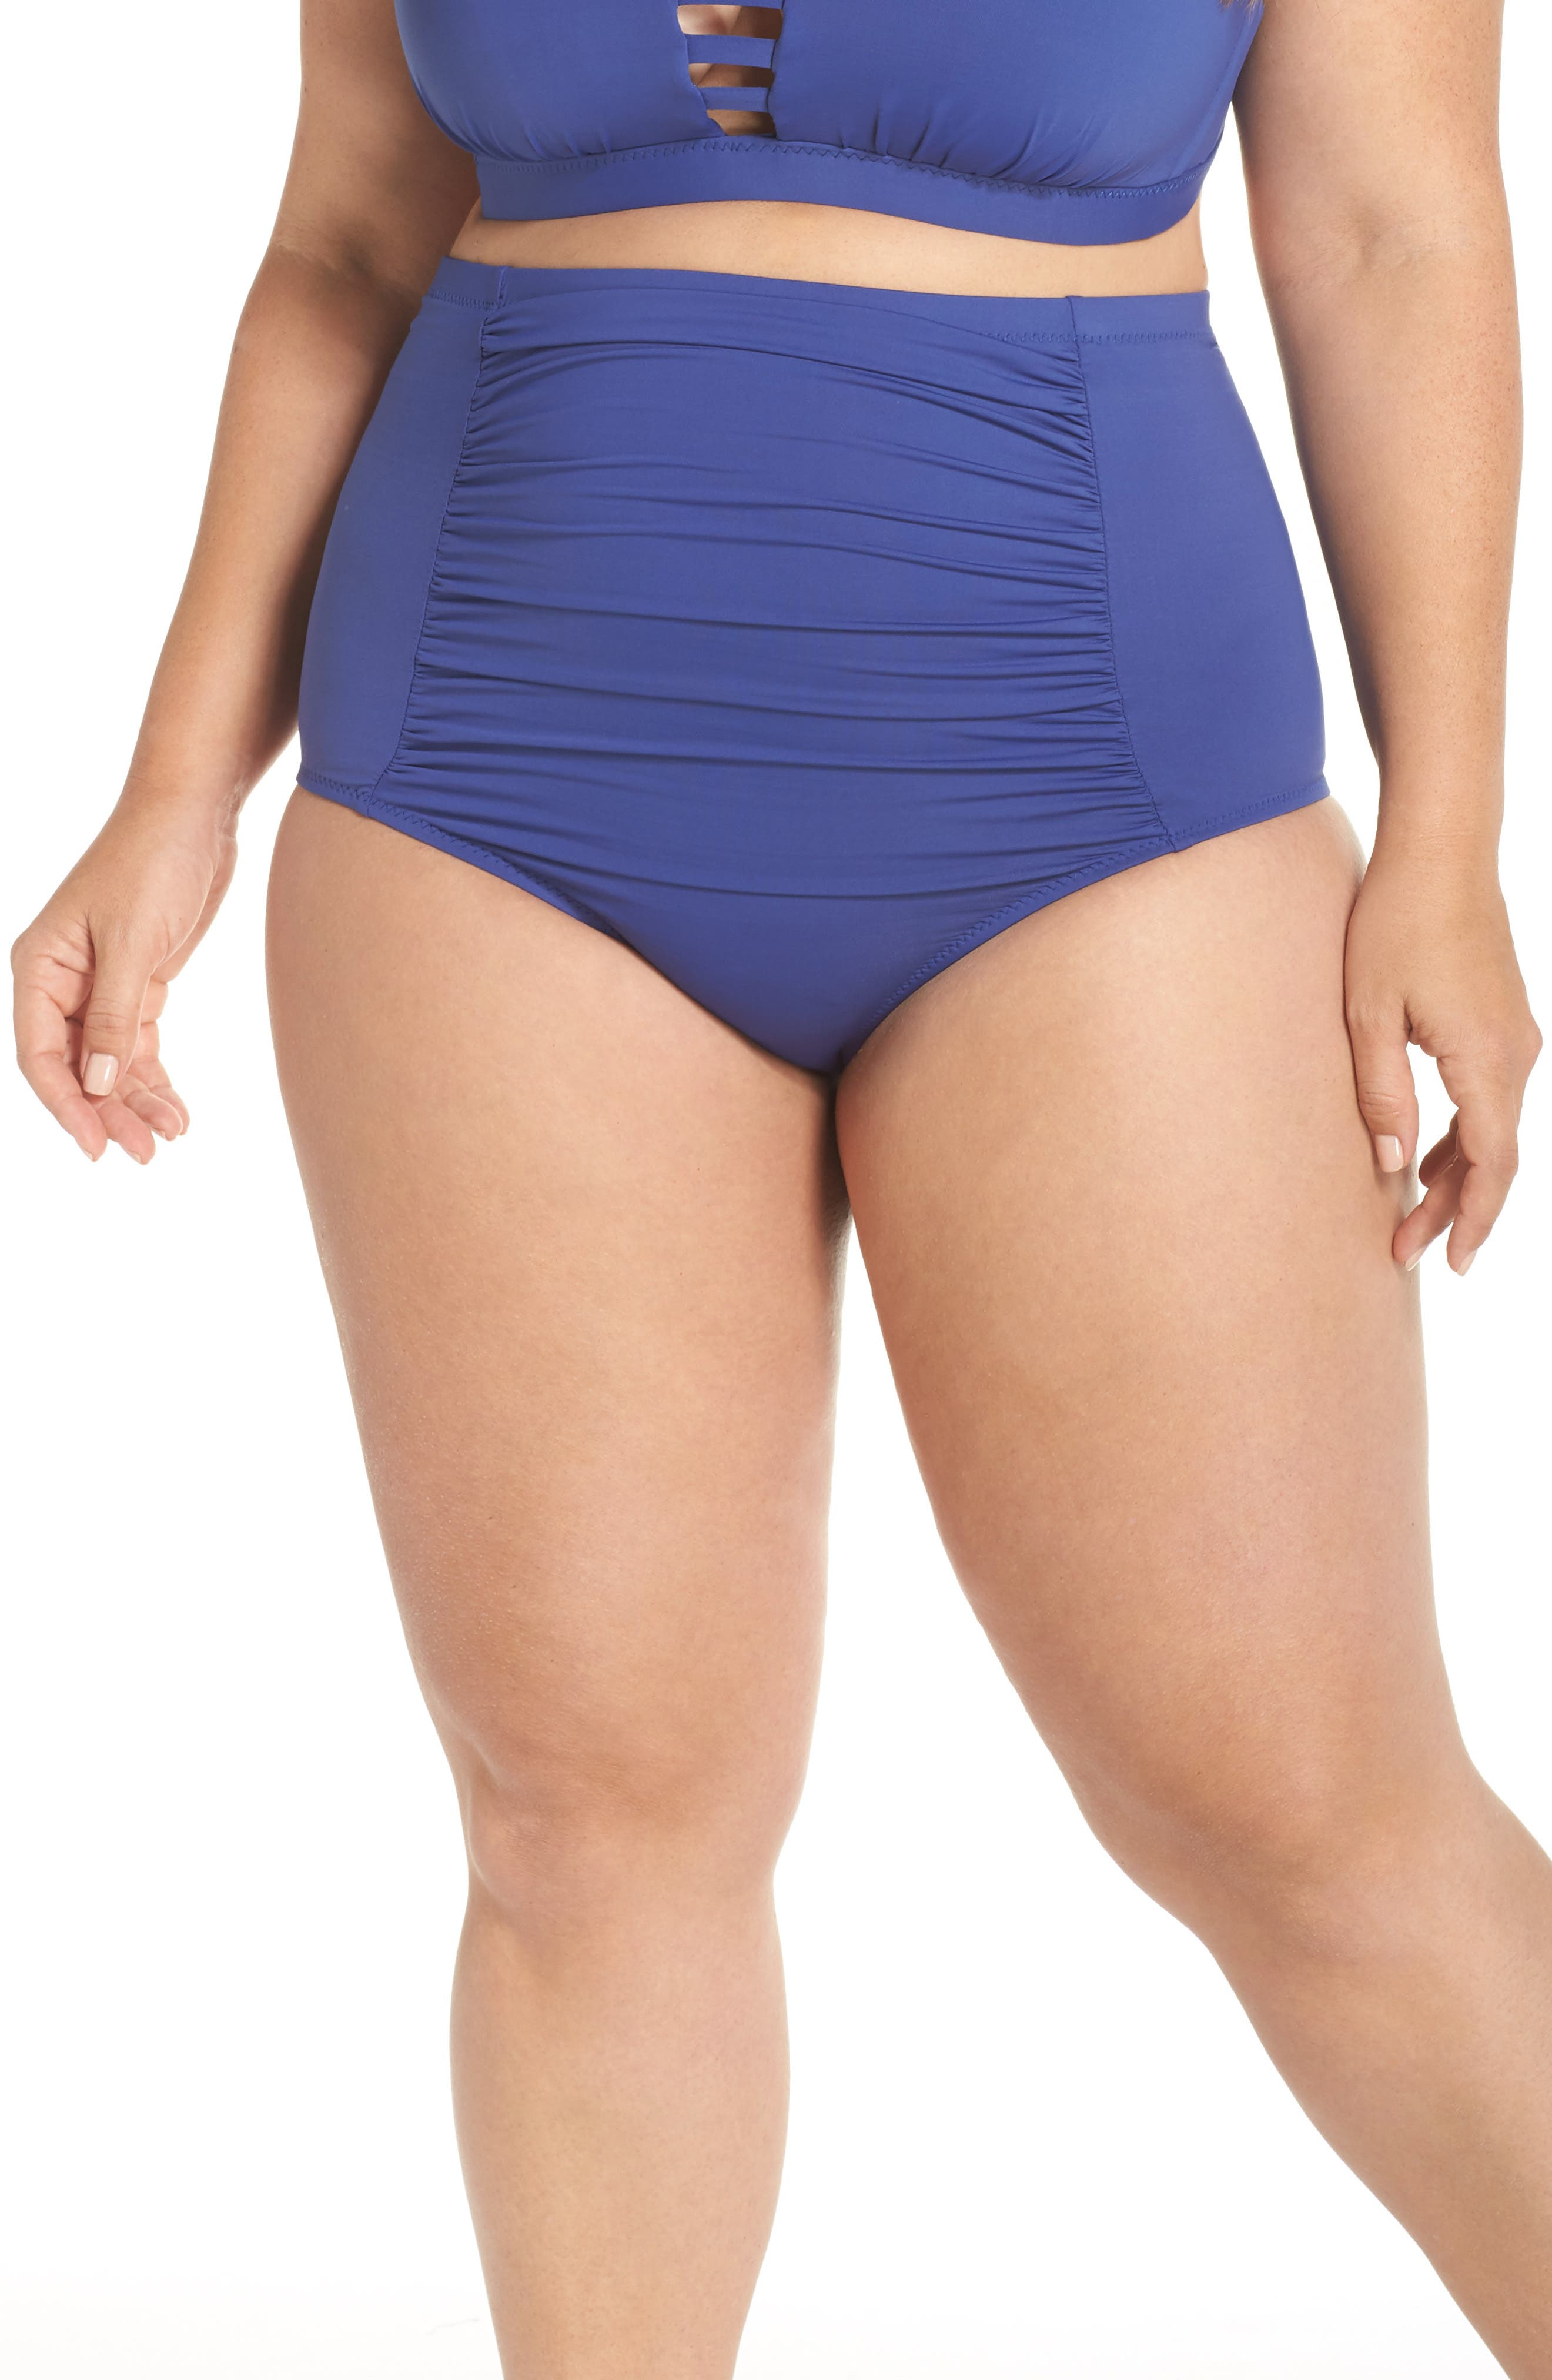 BECCA ETC. Color Code High Waist Bikini Bottoms, Main, color, BLUE TOPAZ